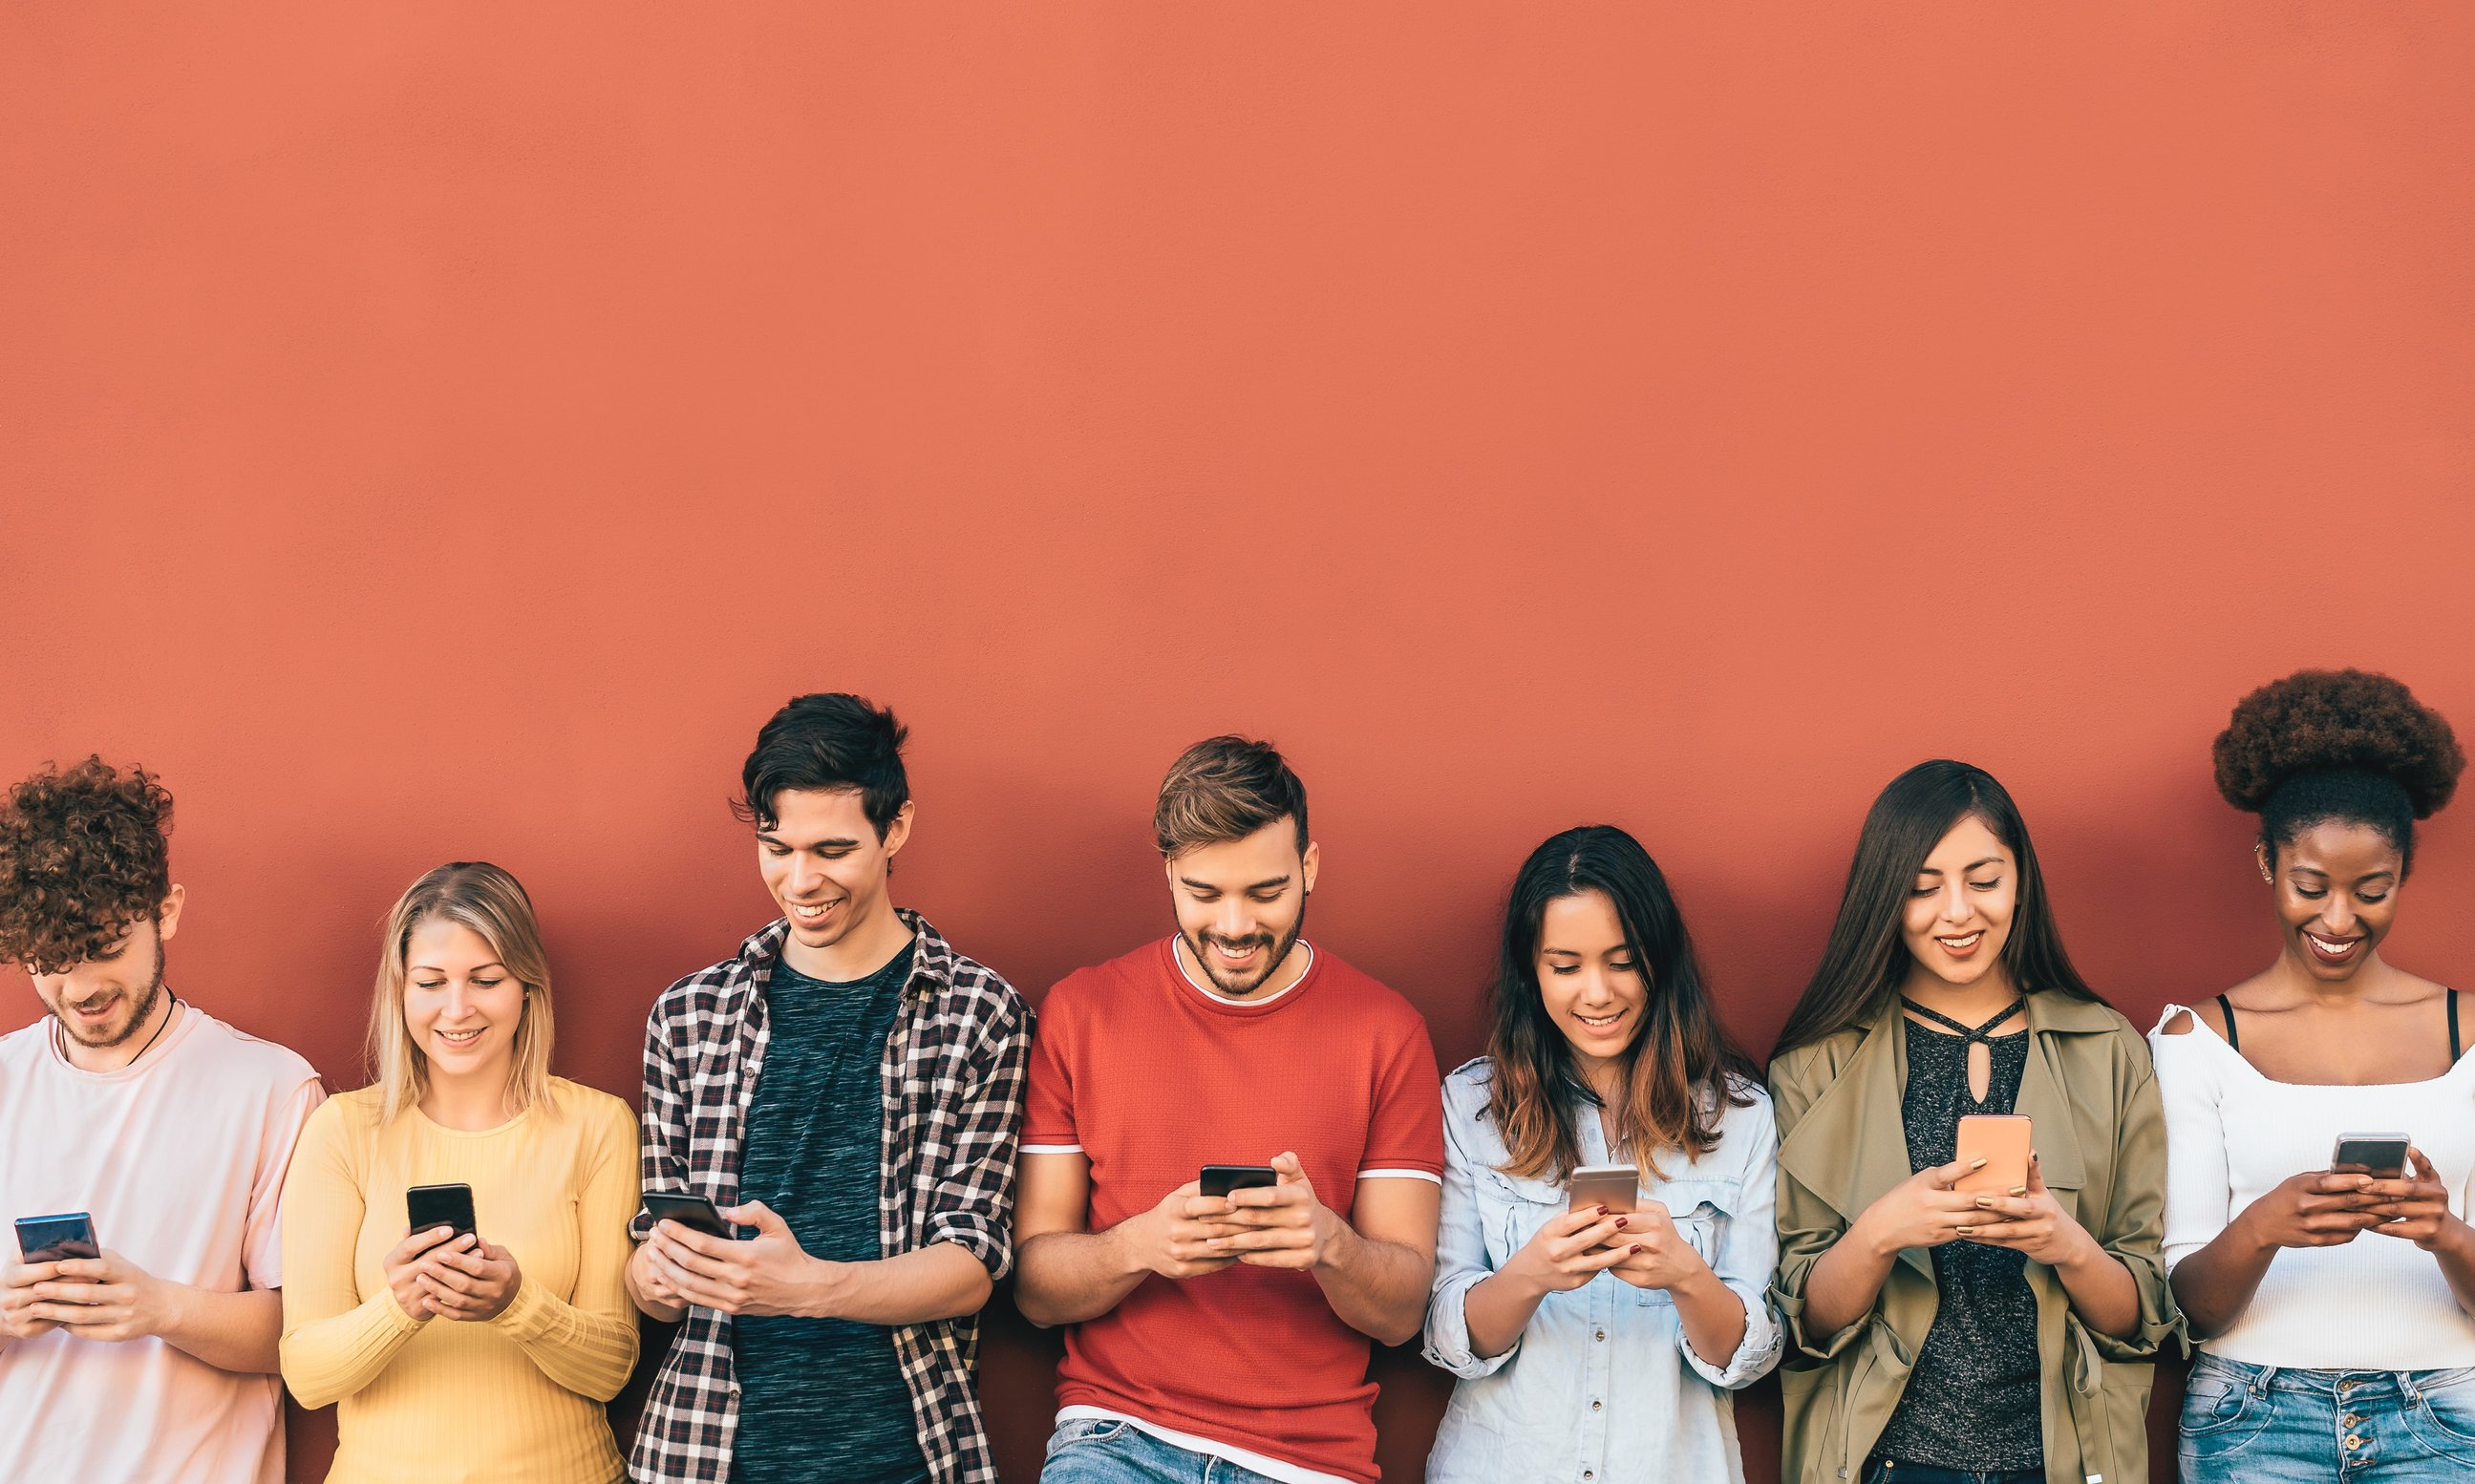 7 Things to Keep in Mind While Designing Digital Learning for Millennials